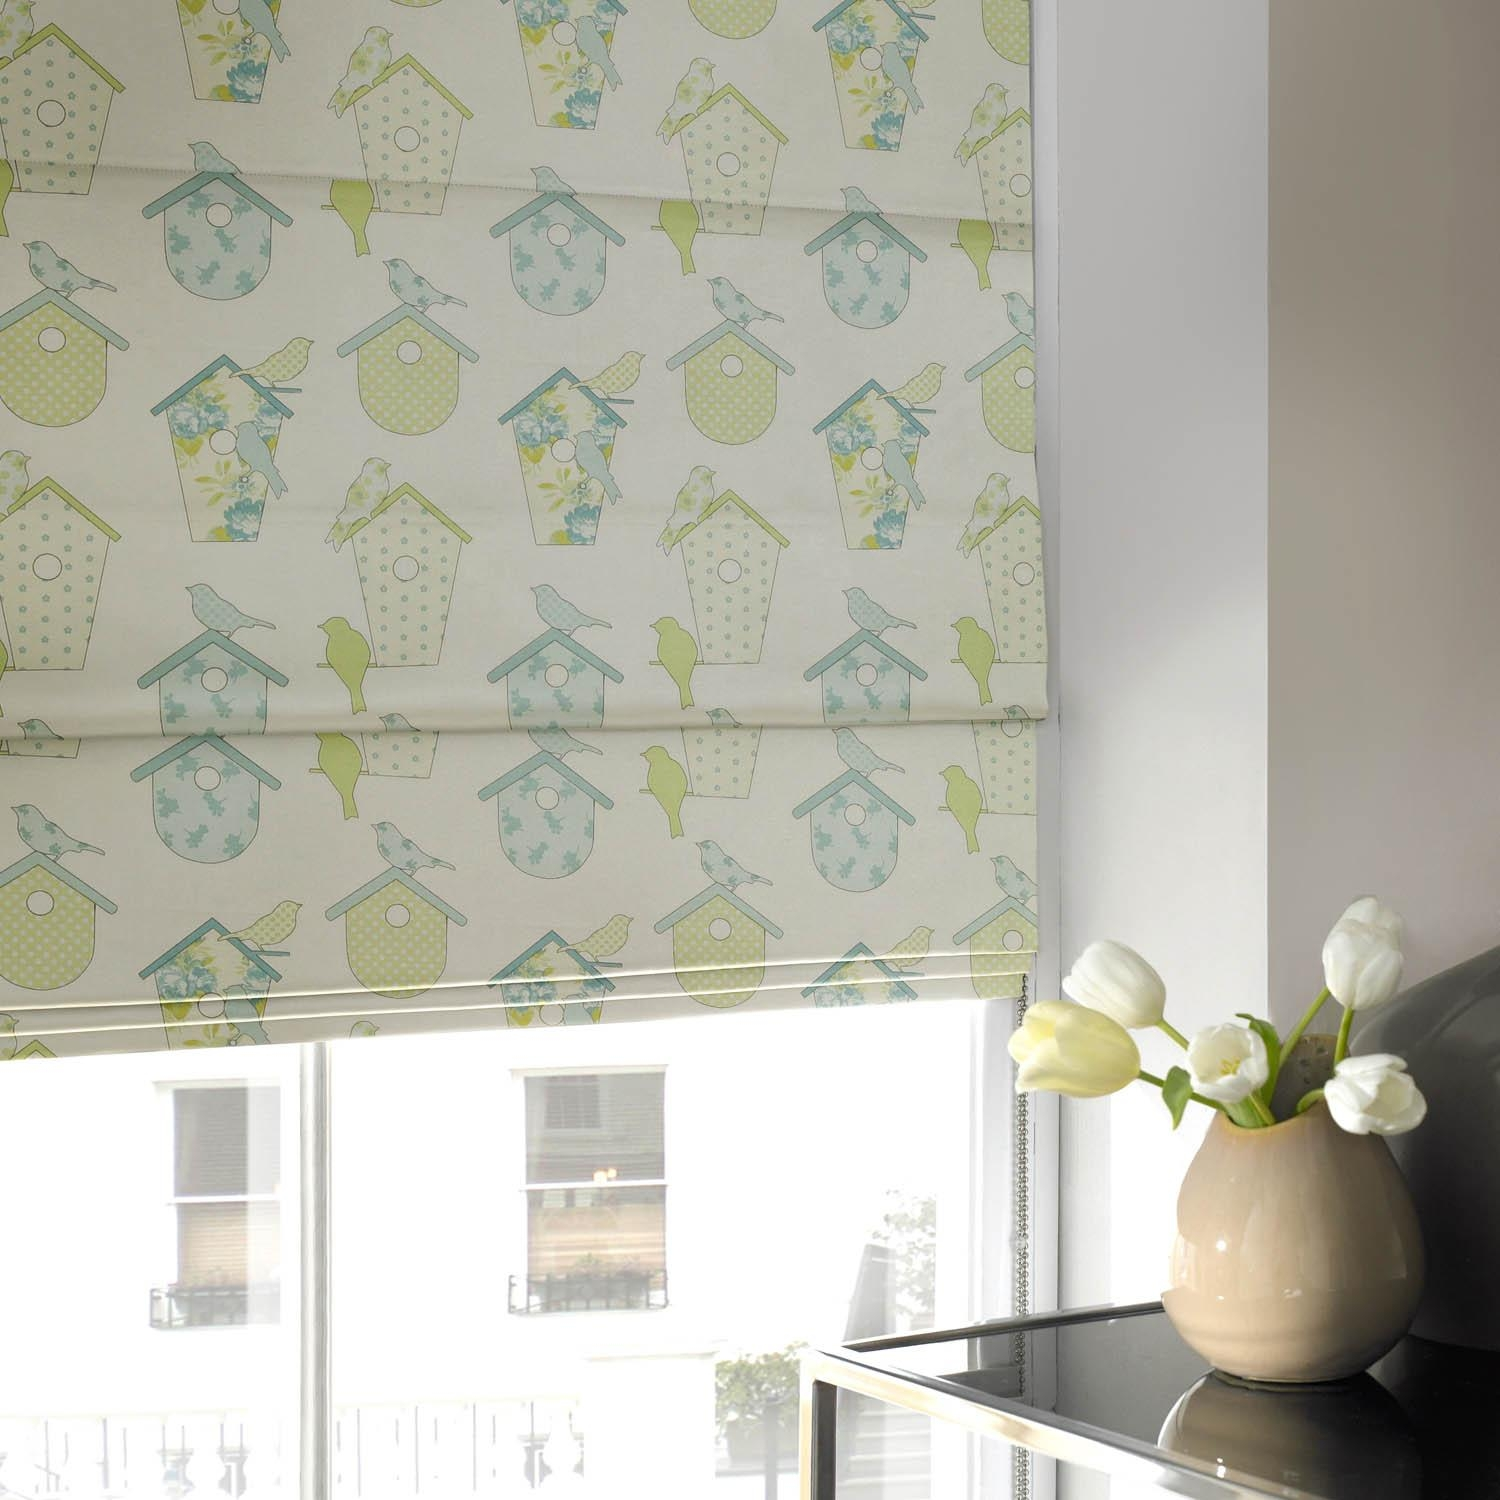 Bird House Roman Blind Spring Free Uk Delivery Terrys Fabrics Regarding Green Roman Blinds (Image 3 of 15)